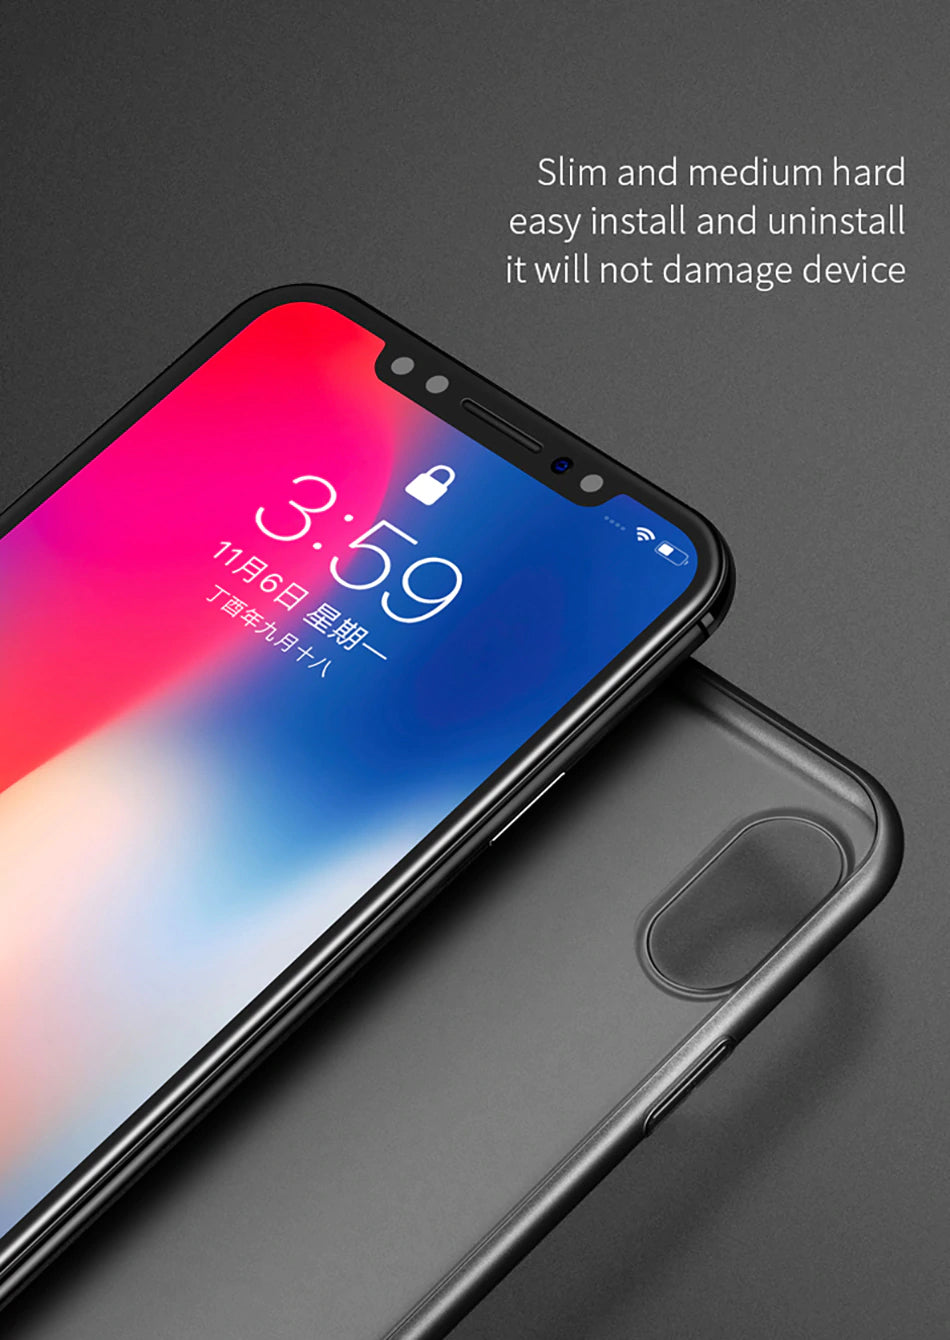 Ultra Thin 0.4mm Luxury Phone Case For iPhone XS MAX XR X 10 8 7 Plus Case Precision Fit Anti Protective Transparent Back Cover For iPhone